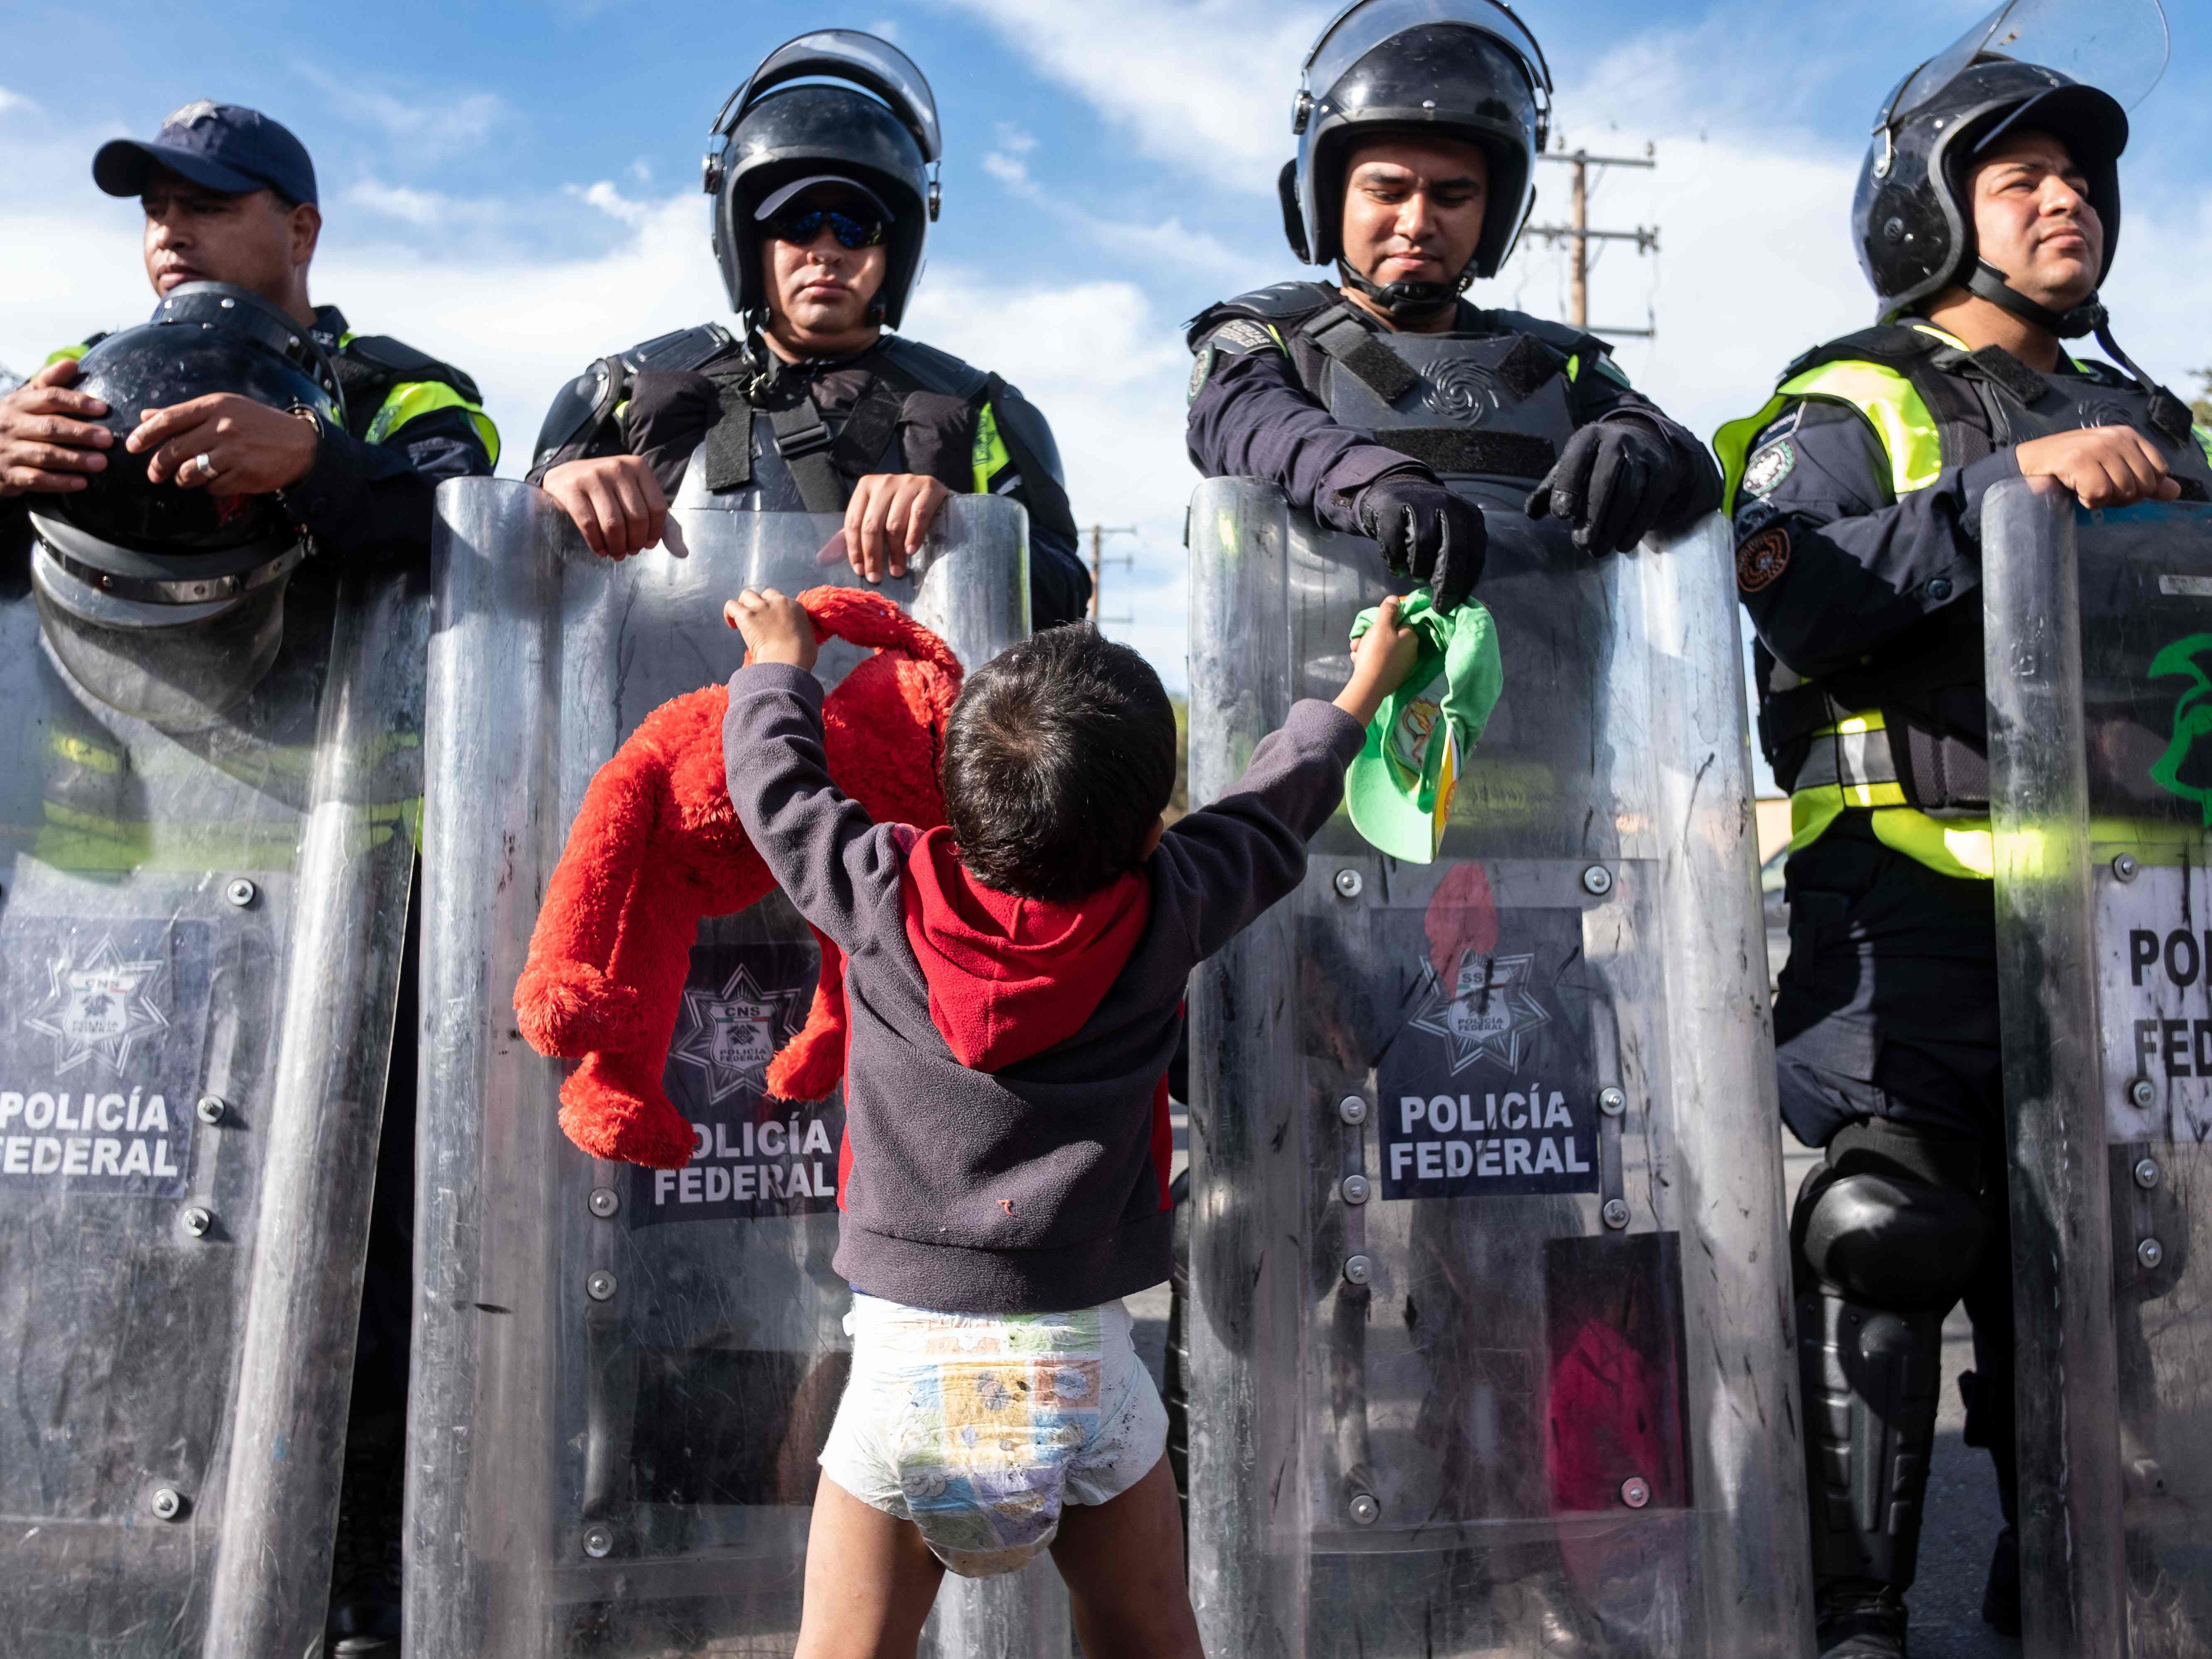 A migrant boy, part of the Central American migrants, plays with Mexico's Federal police at El Chaparral port of entry on the U.S.-Mexico border in Tijuana, Baja California state, Mexico on Nov. 22, 2018